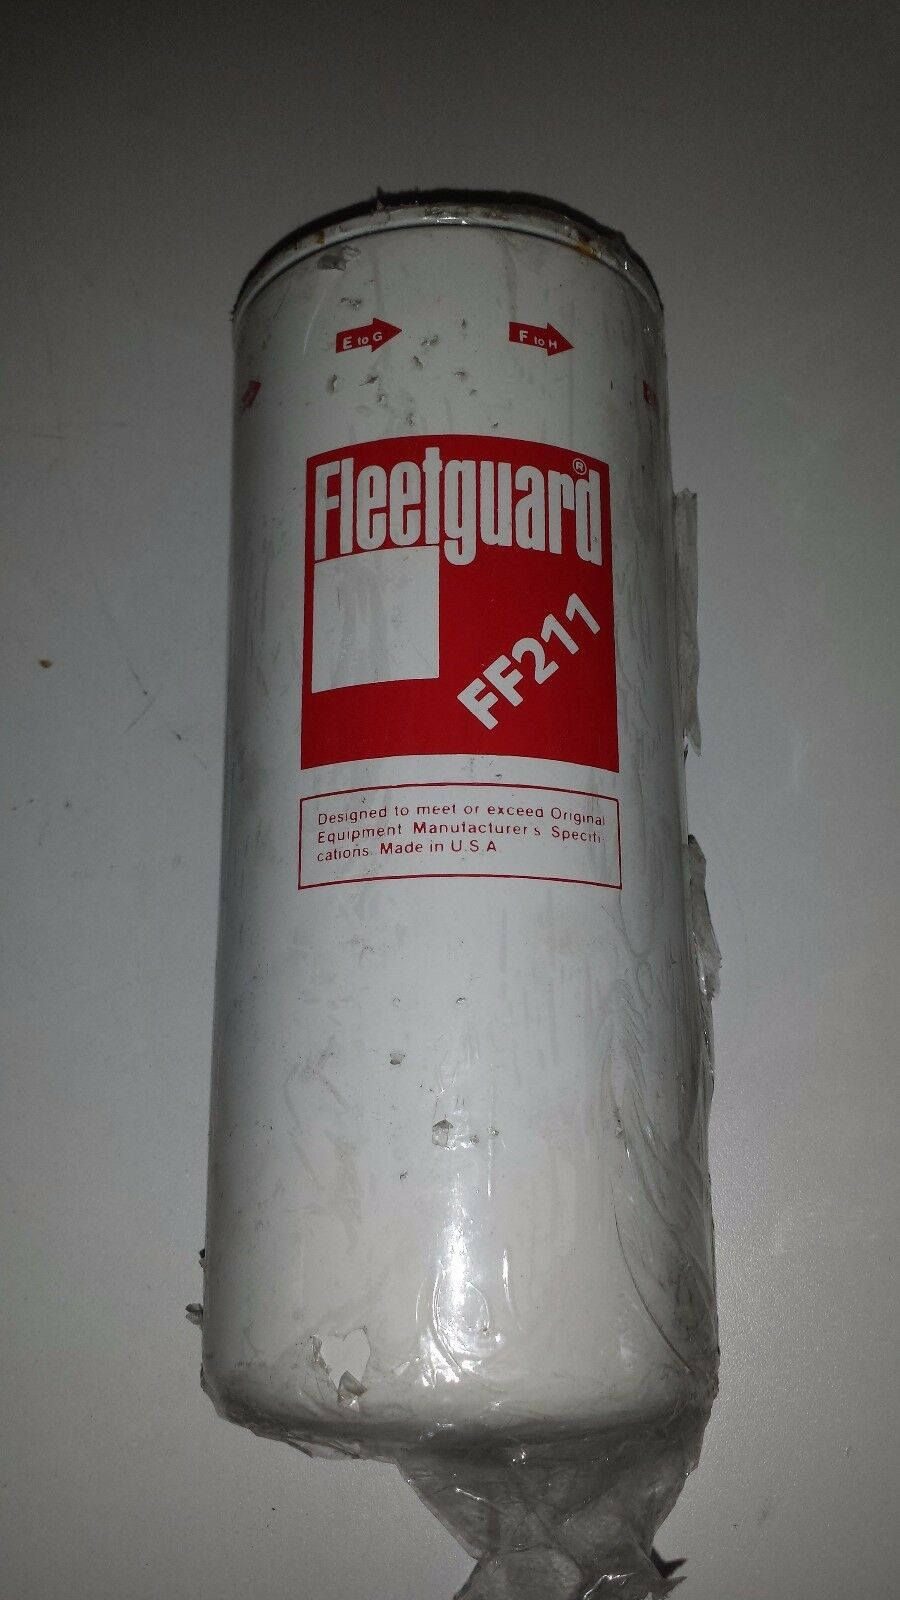 Fleetguard Fuel Filter Ff211 2000 Picclick Filters For Diesel 1 Of 3only 3 Available